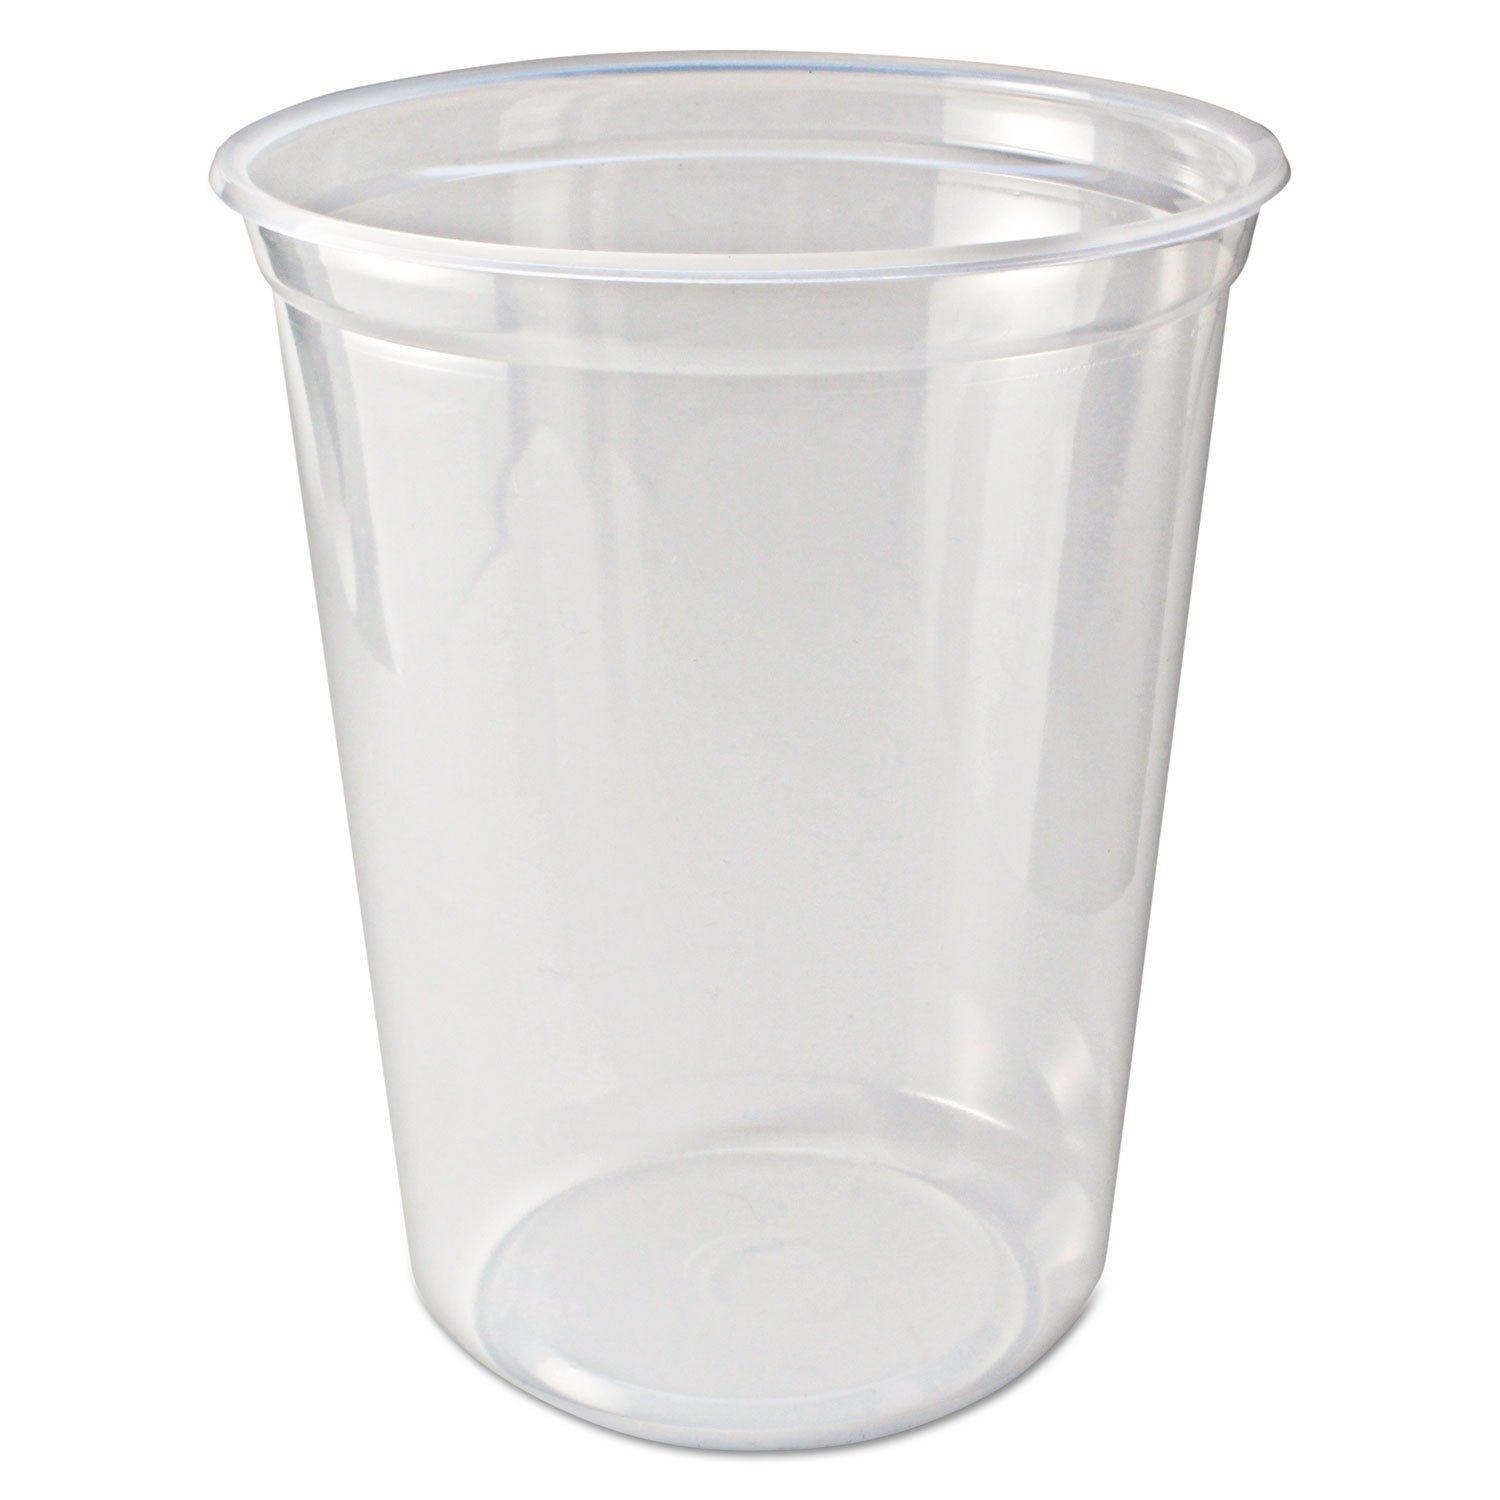 Fabrikal PK32T 32 oz. Clear Round Pro-Kal Microwavable Deli Container - 500 per Case